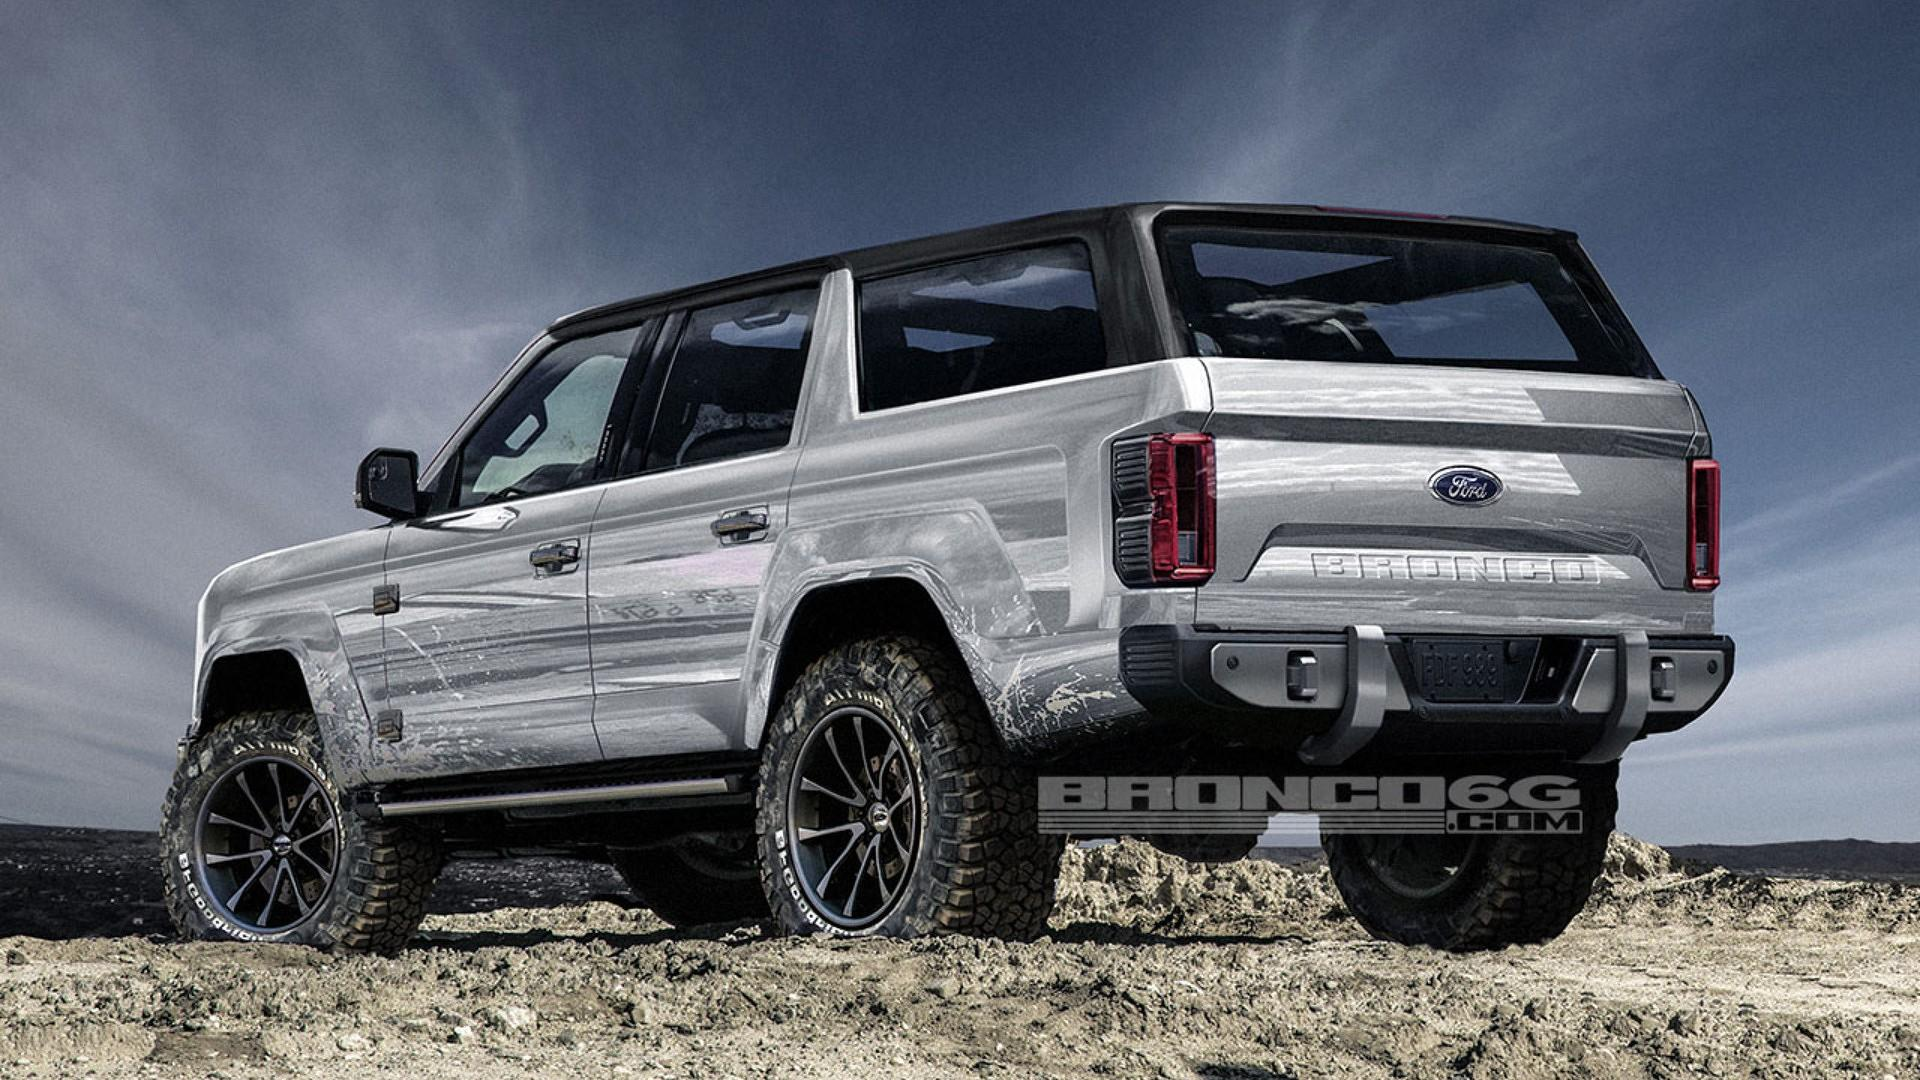 54 Best Price Of 2020 Ford Bronco Price